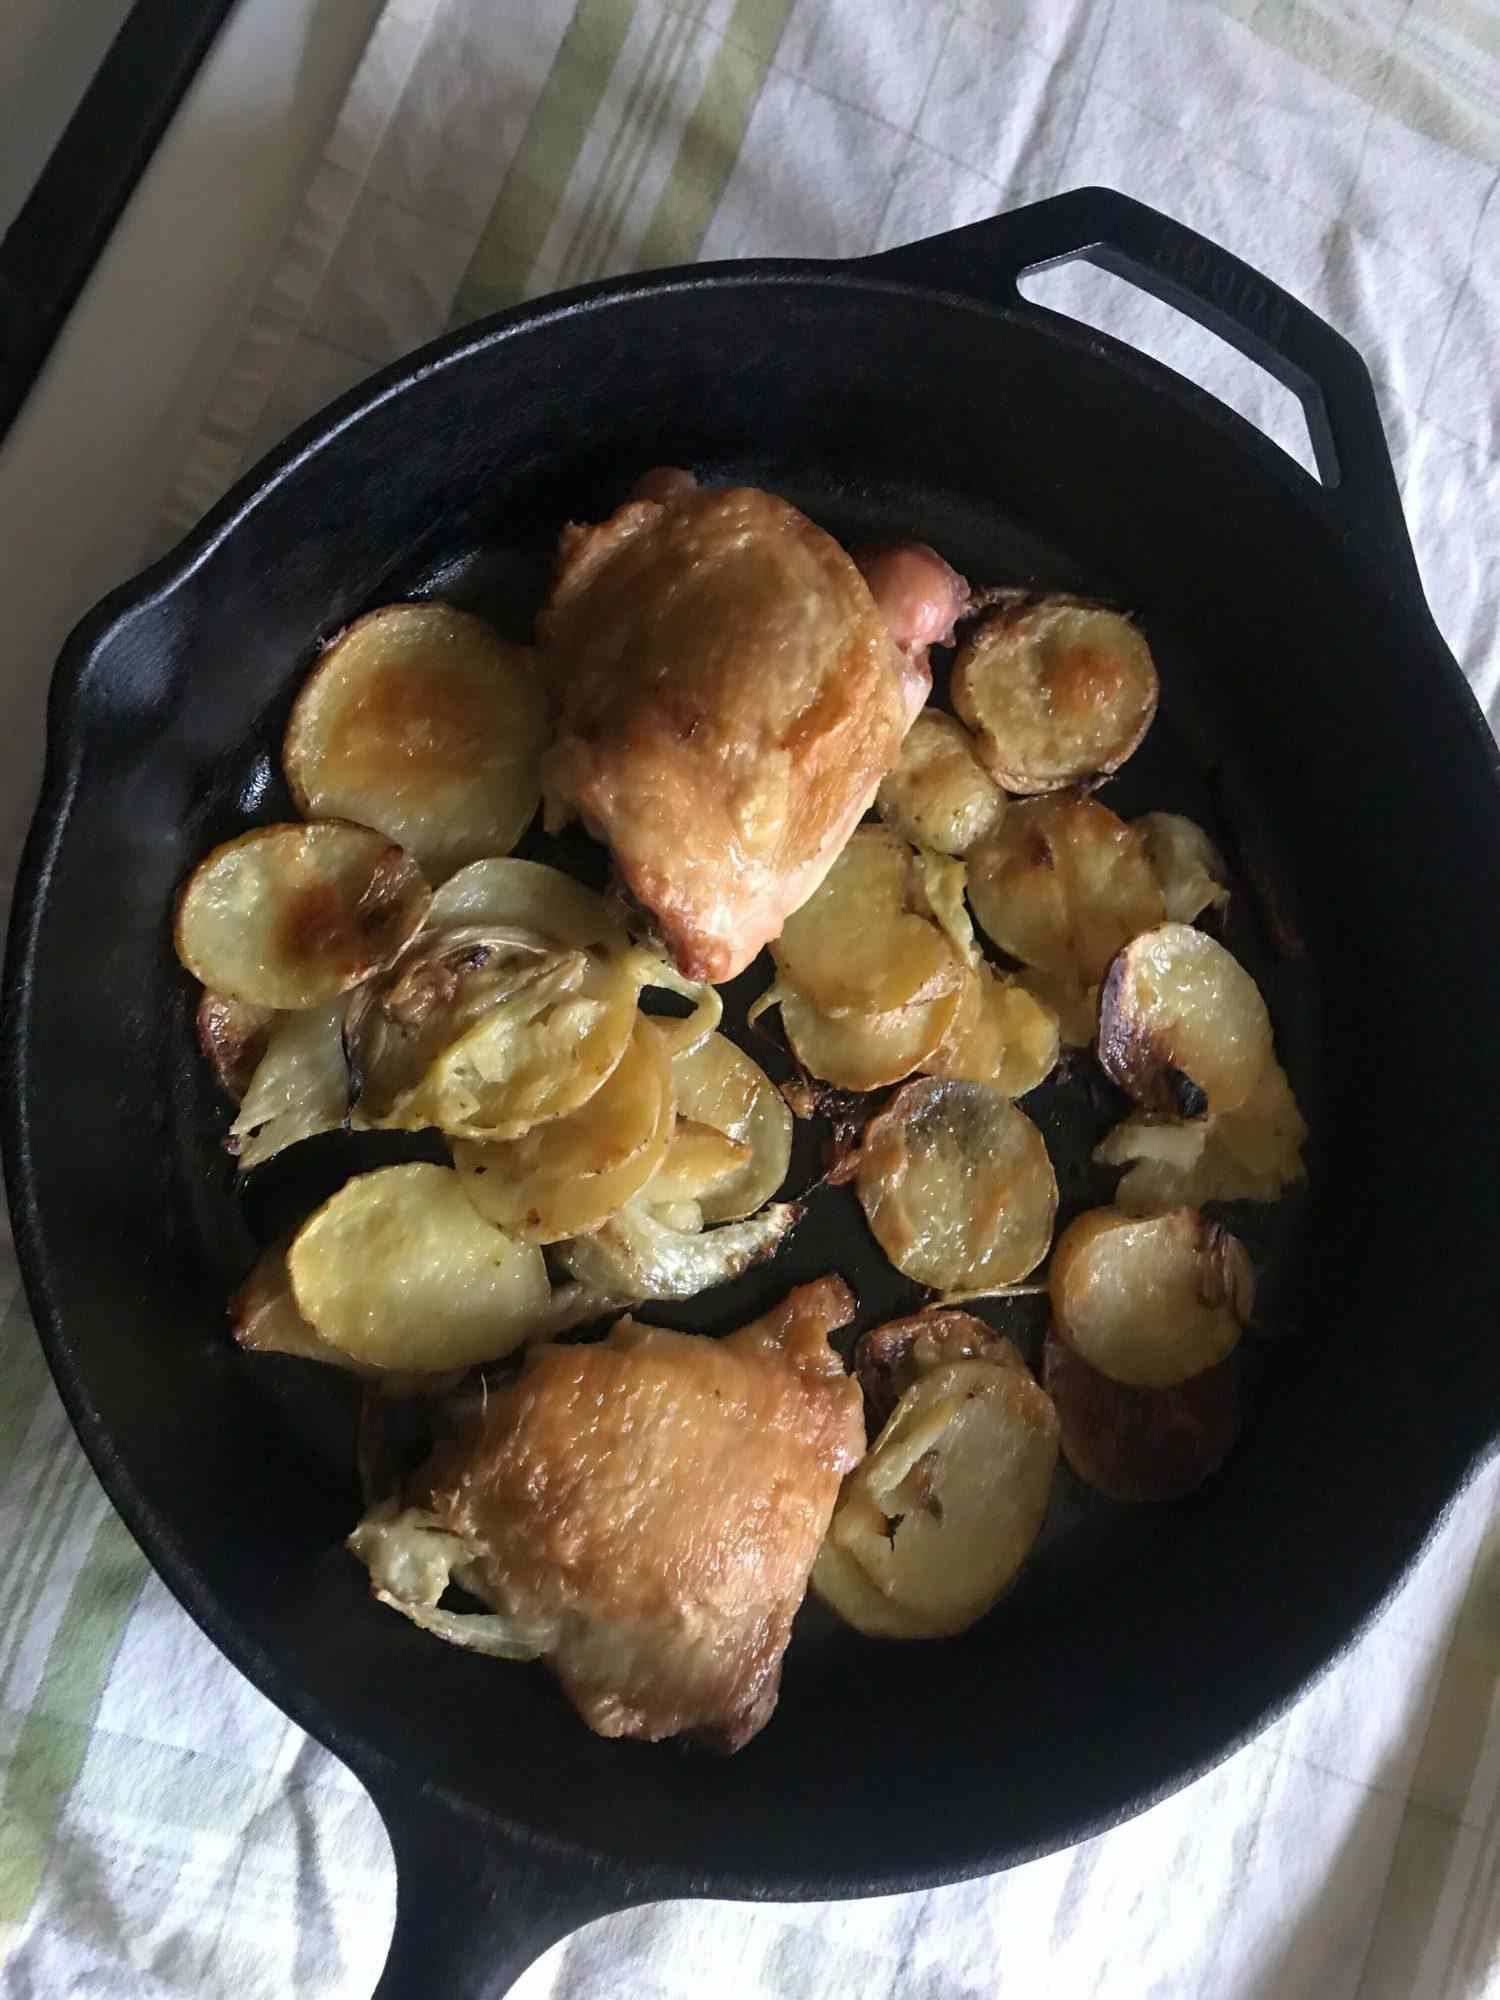 Chicken thighs and sliced potatoes and fennel in a cast iron pan